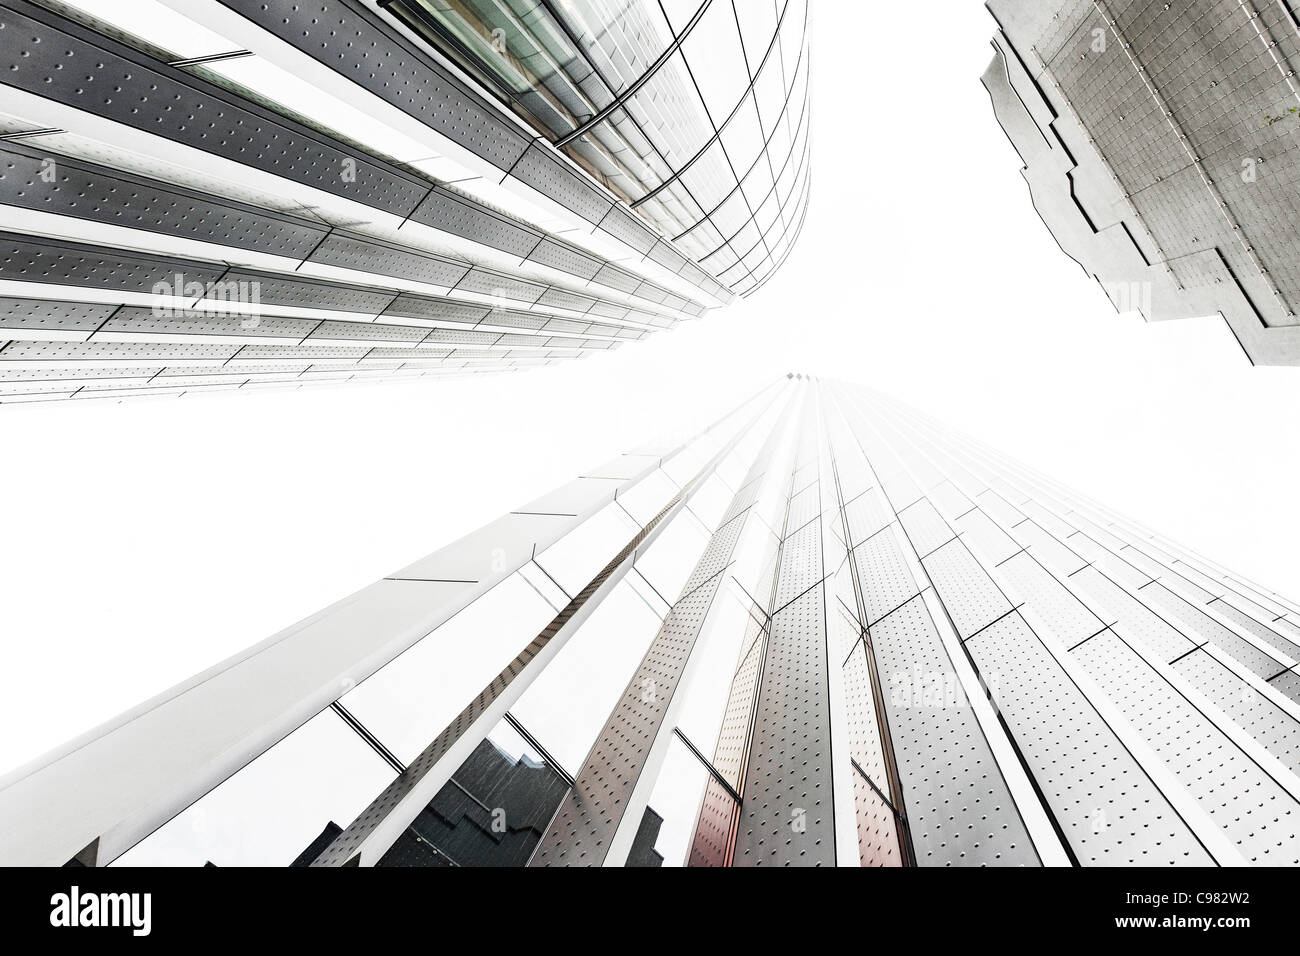 Towers, Skyscrapers, Exterior worms-eye view, City of London, England, United Kingdom, UK, Europe - Stock Image